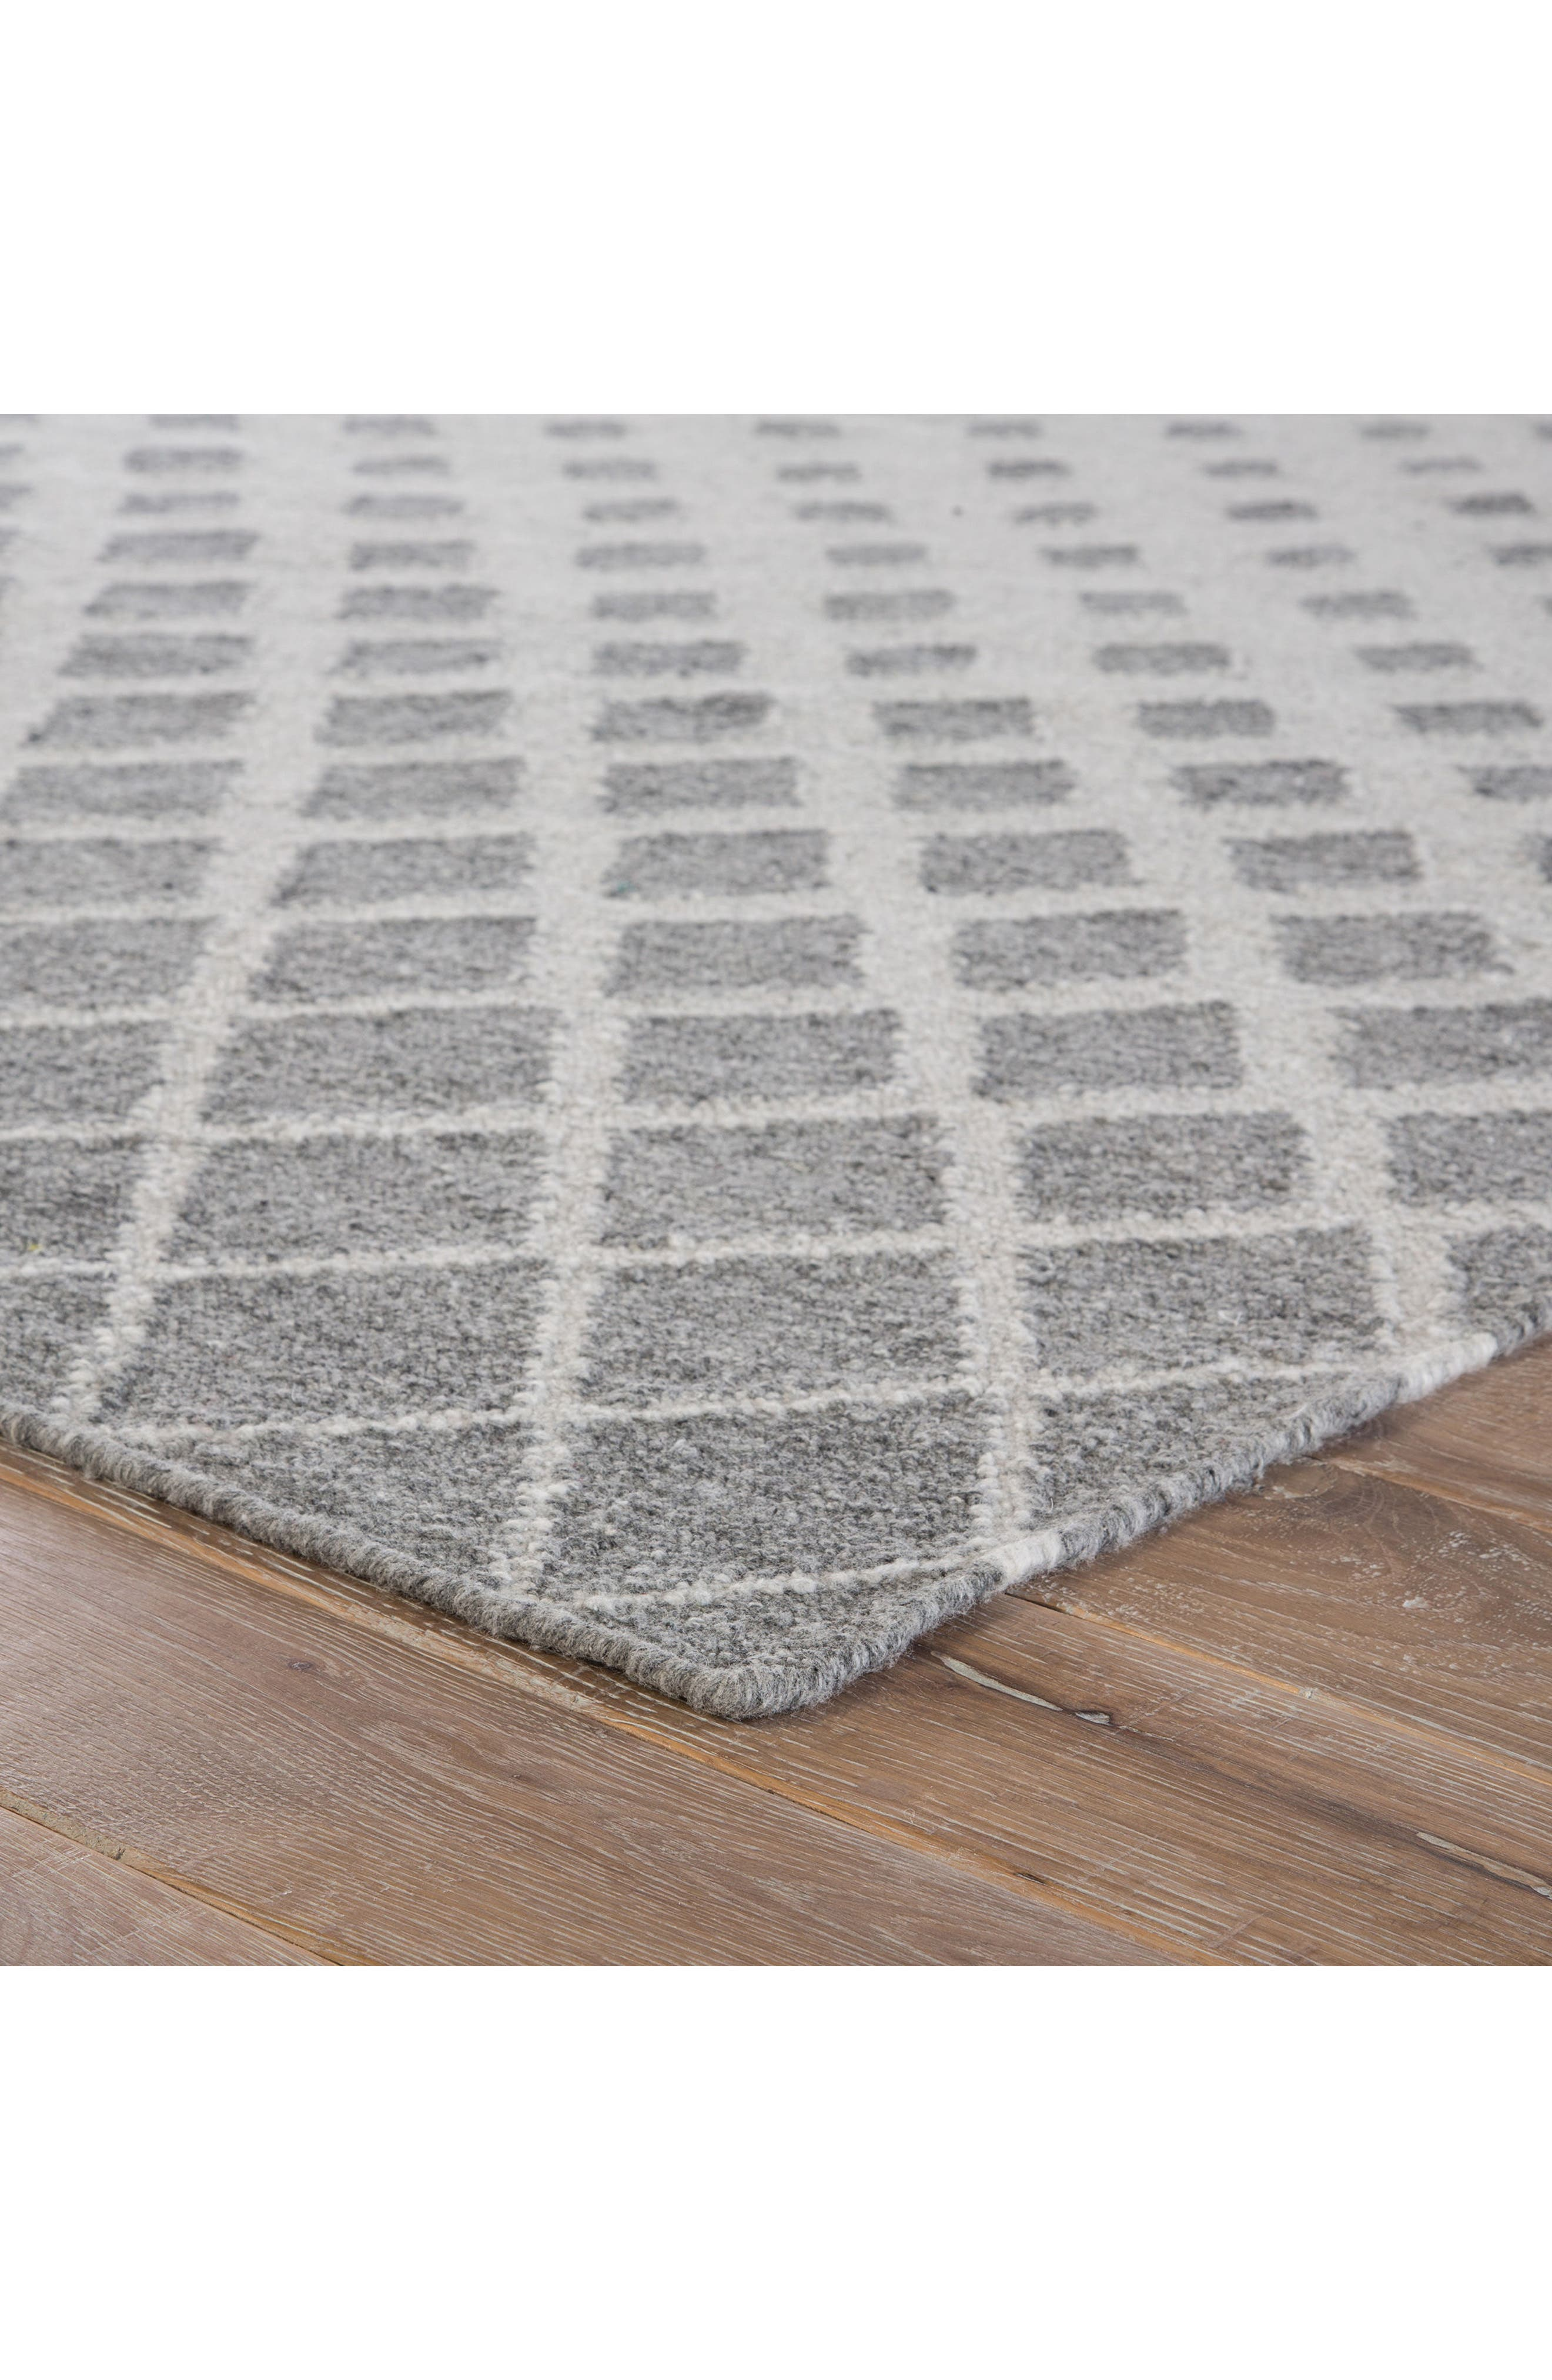 Pyramid Blocks Rug,                             Alternate thumbnail 6, color,                             099